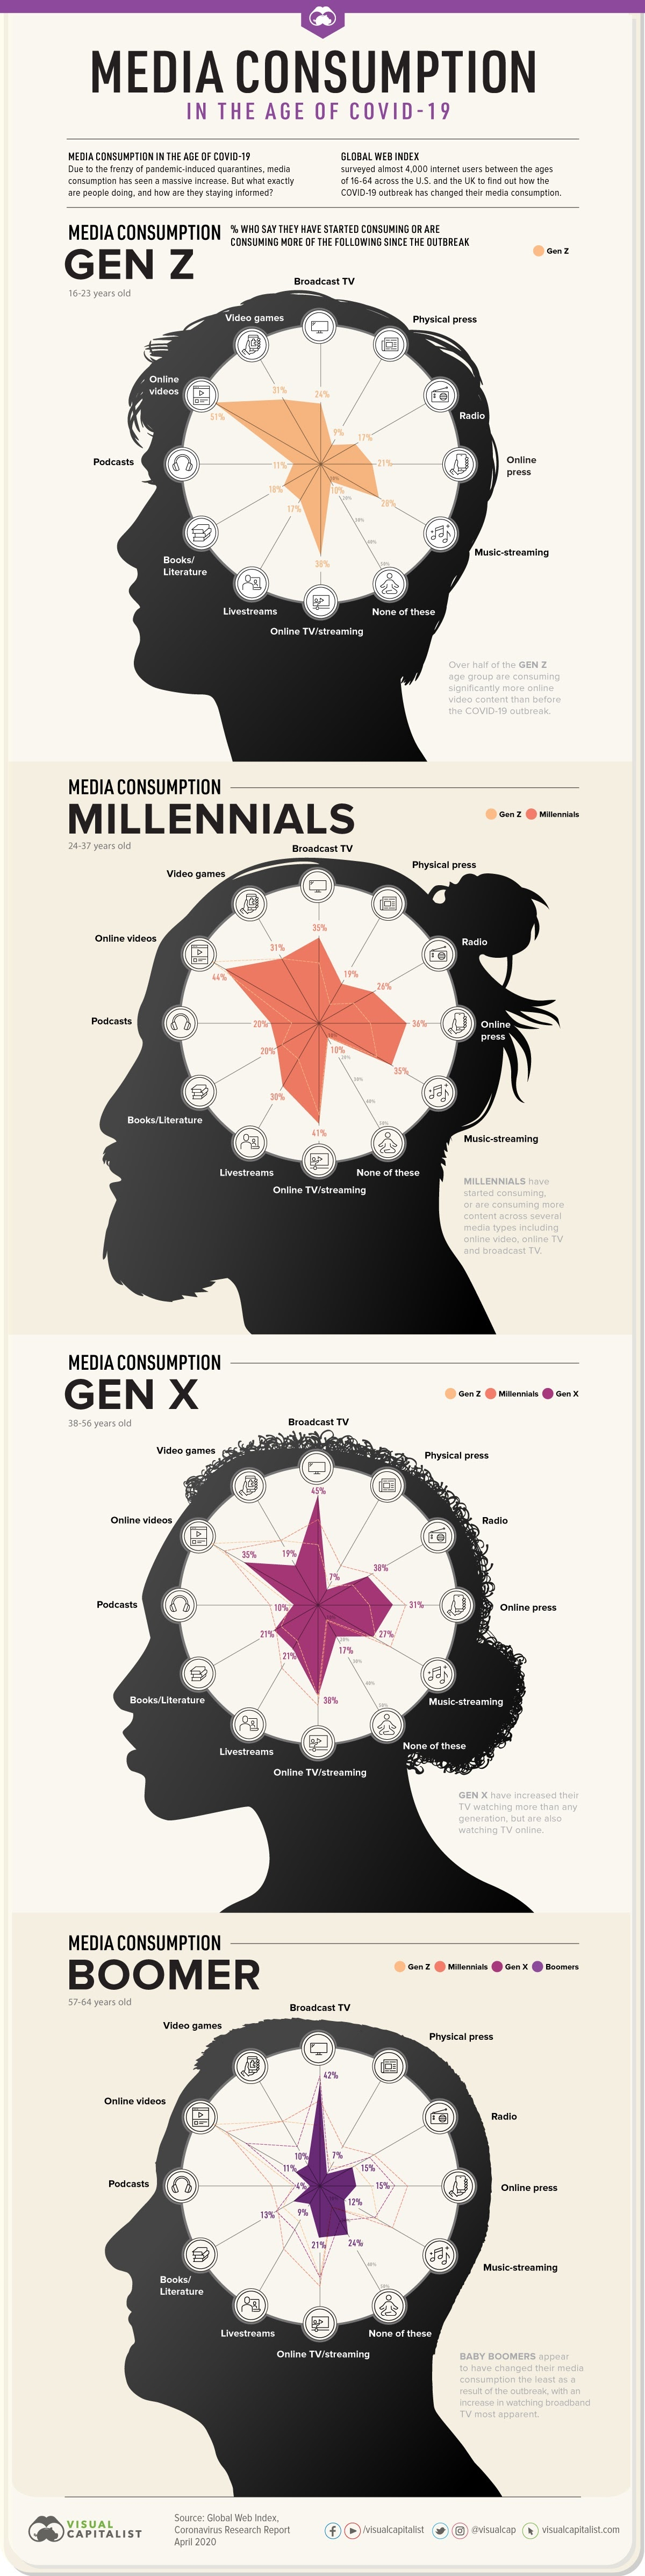 How Covid-19 Has Affected Media Use, by Generation #infographic